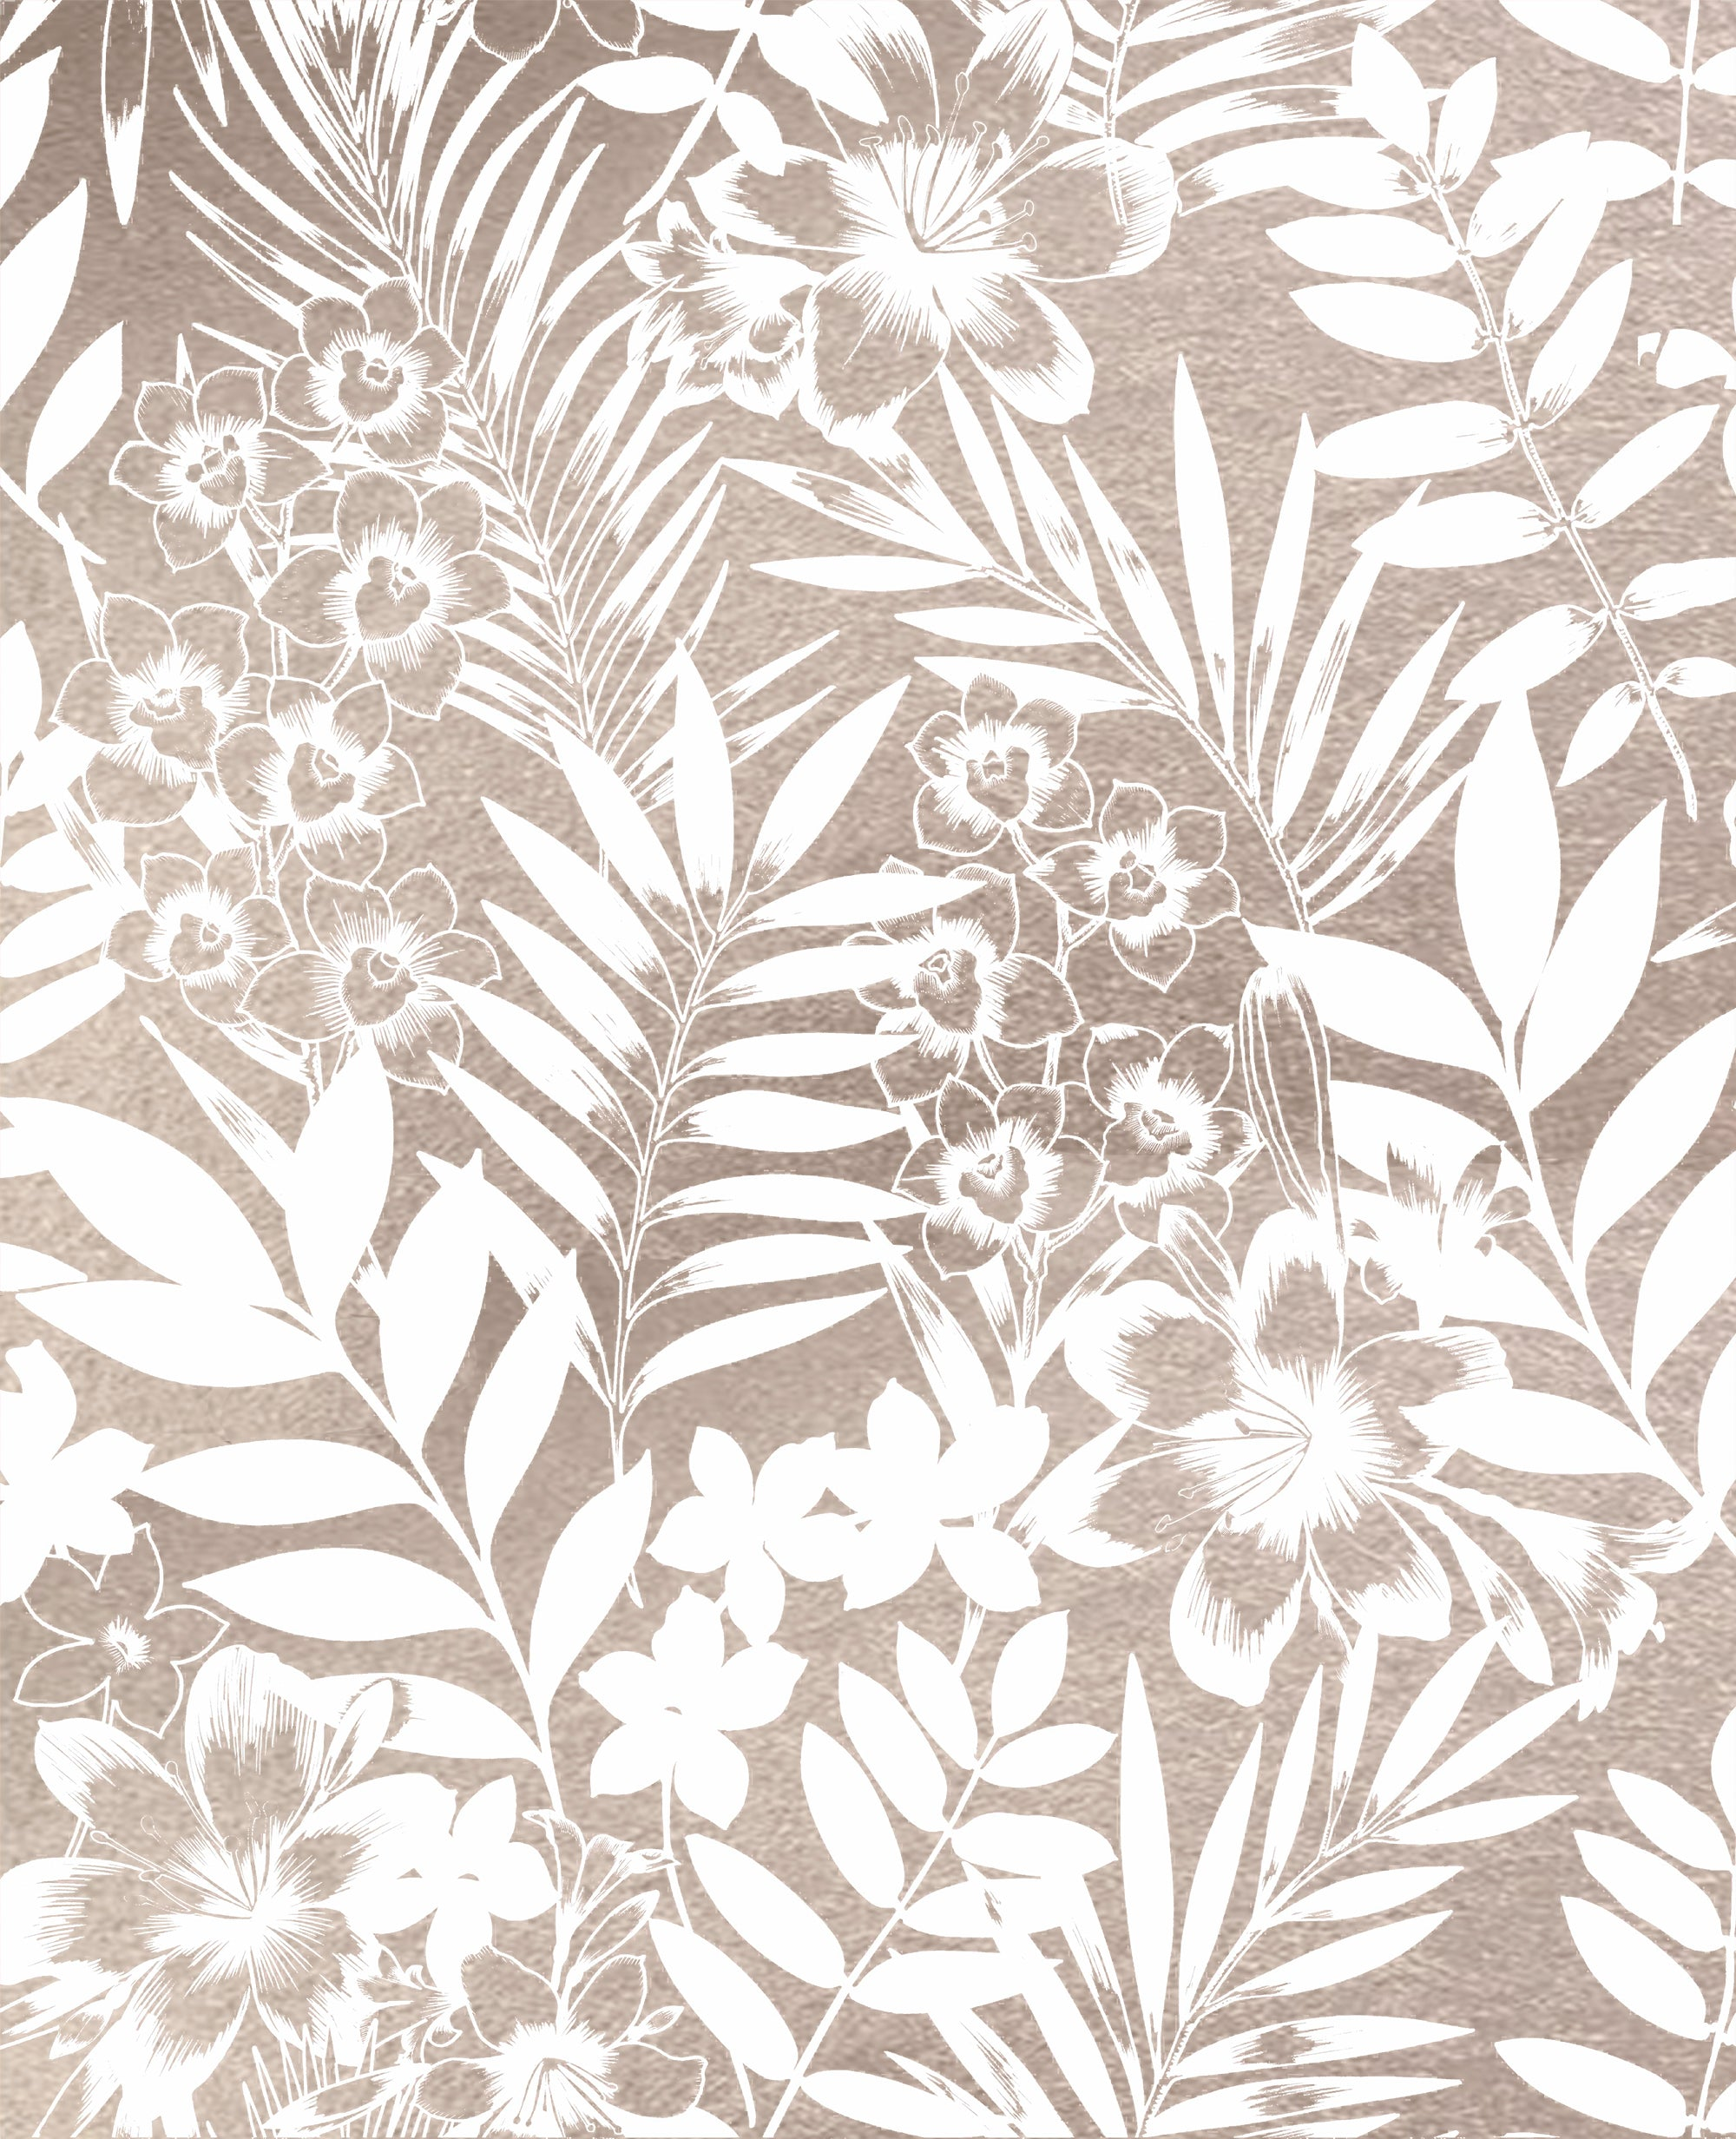 Leaf and Flower Floral Trail | Metallic Rose Gold & Matte White Wallpaper